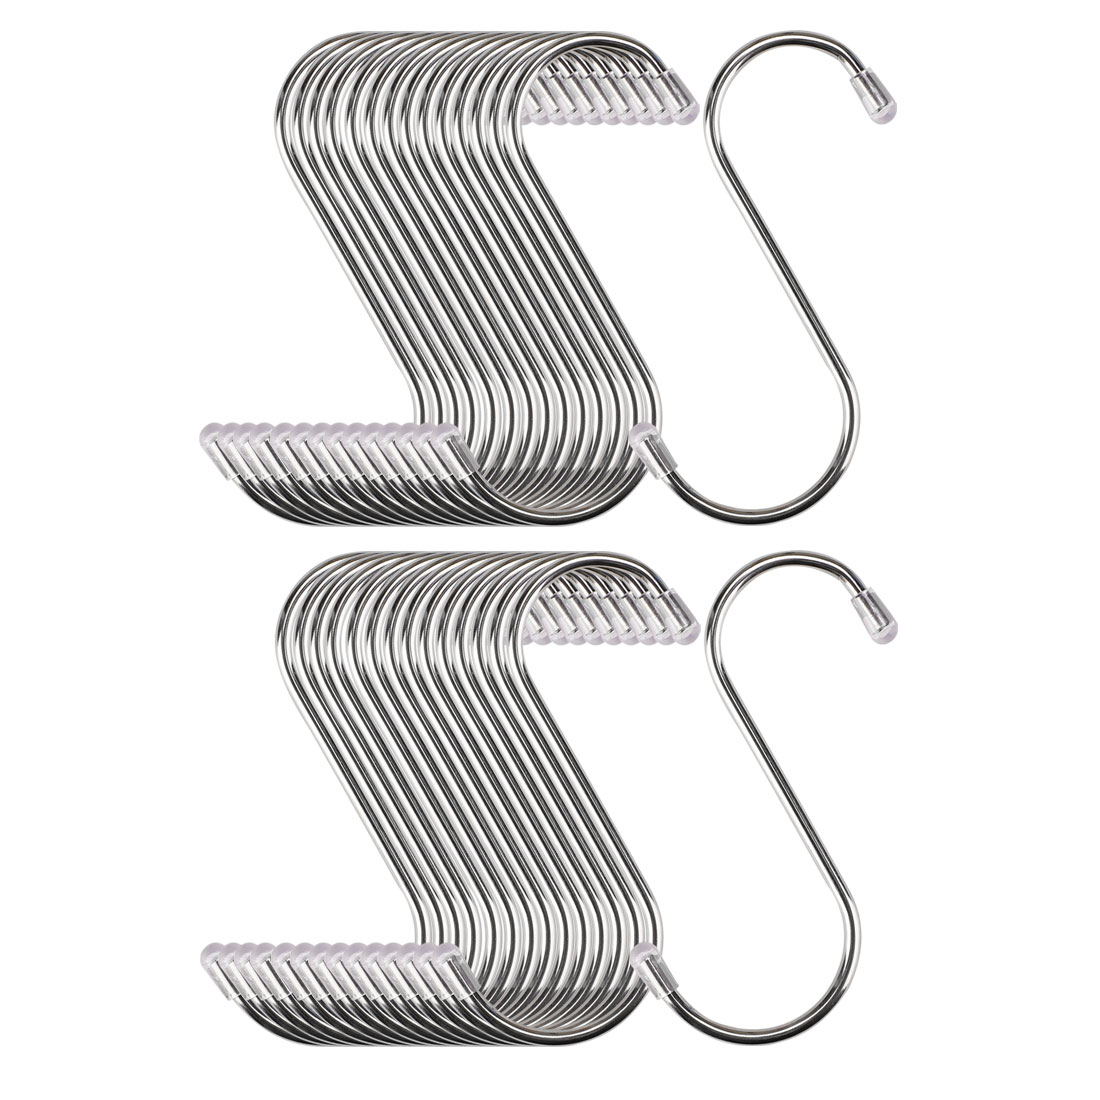 30pcs 3.46 Inch S Shaped Hook Stainless Steel for Kitchenware Hat Coat Holder